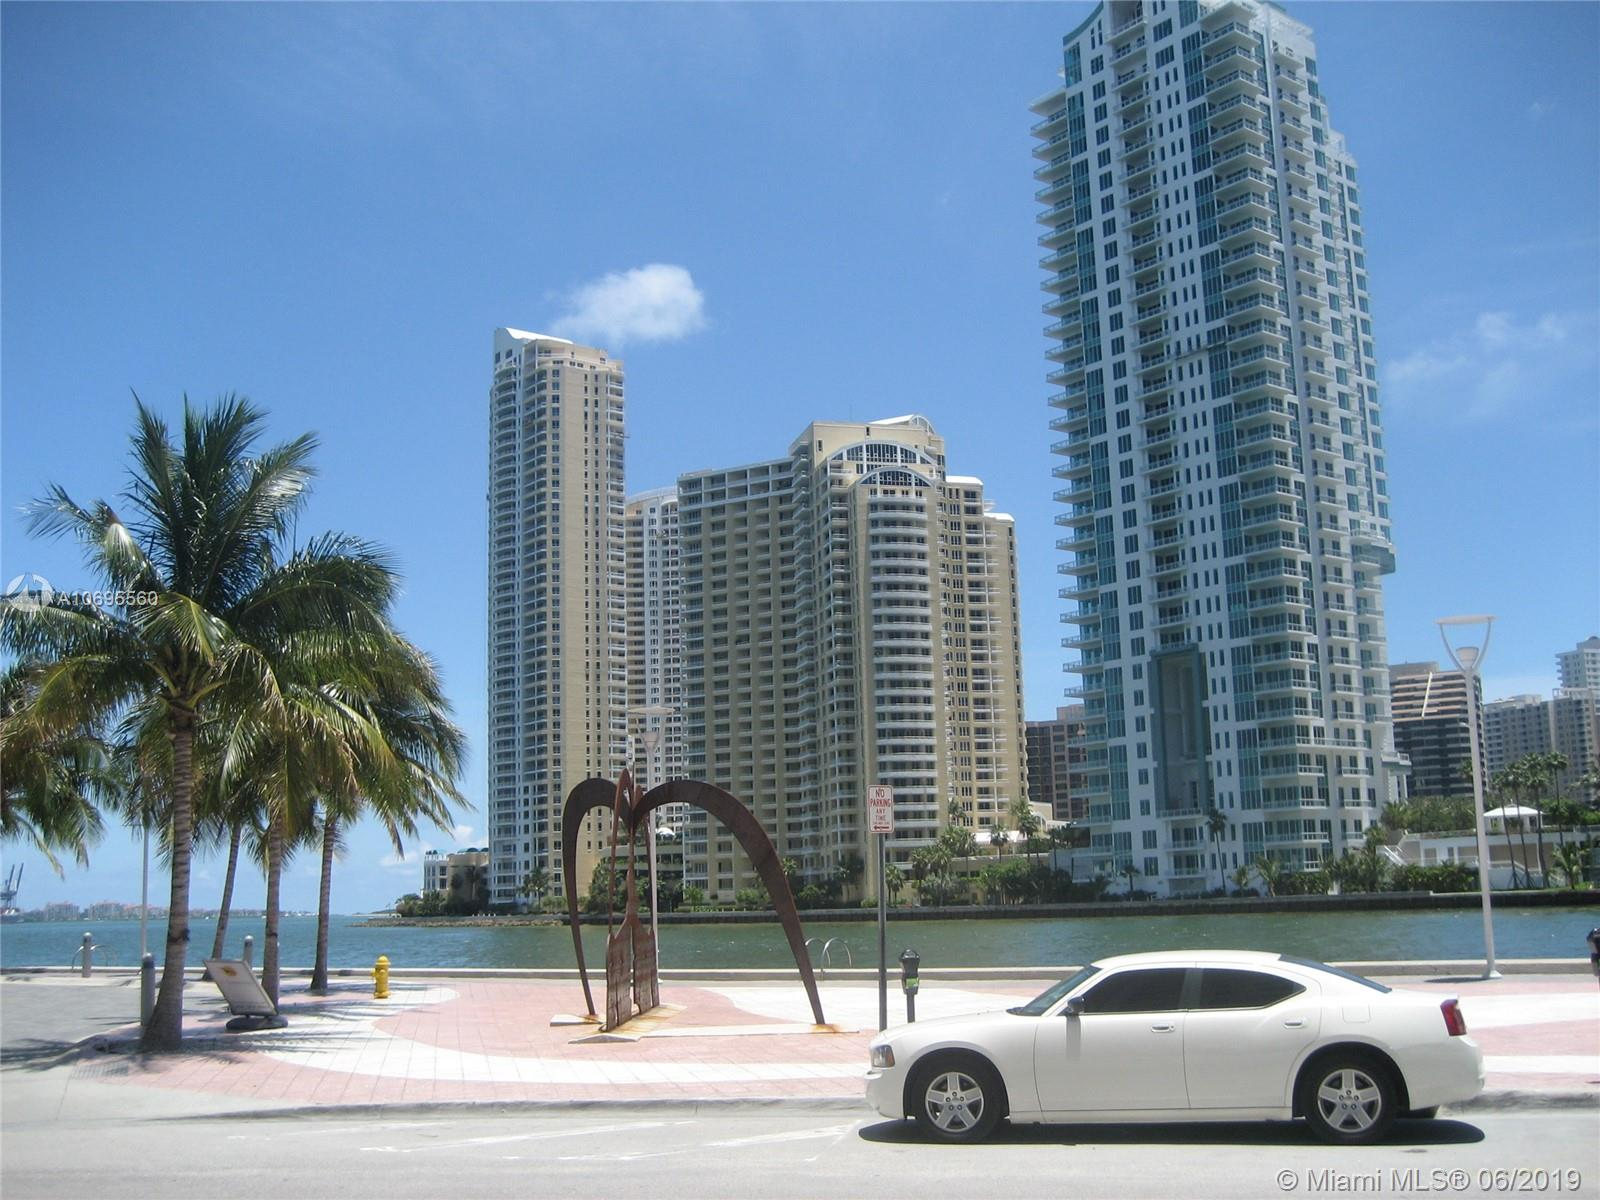 300 S Biscayne Blvd # 1805, Miami, Florida 33131, 1 Bedroom Bedrooms, 3 Rooms Rooms,2 BathroomsBathrooms,Residential,For Sale,300 S Biscayne Blvd # 1805,A10695560